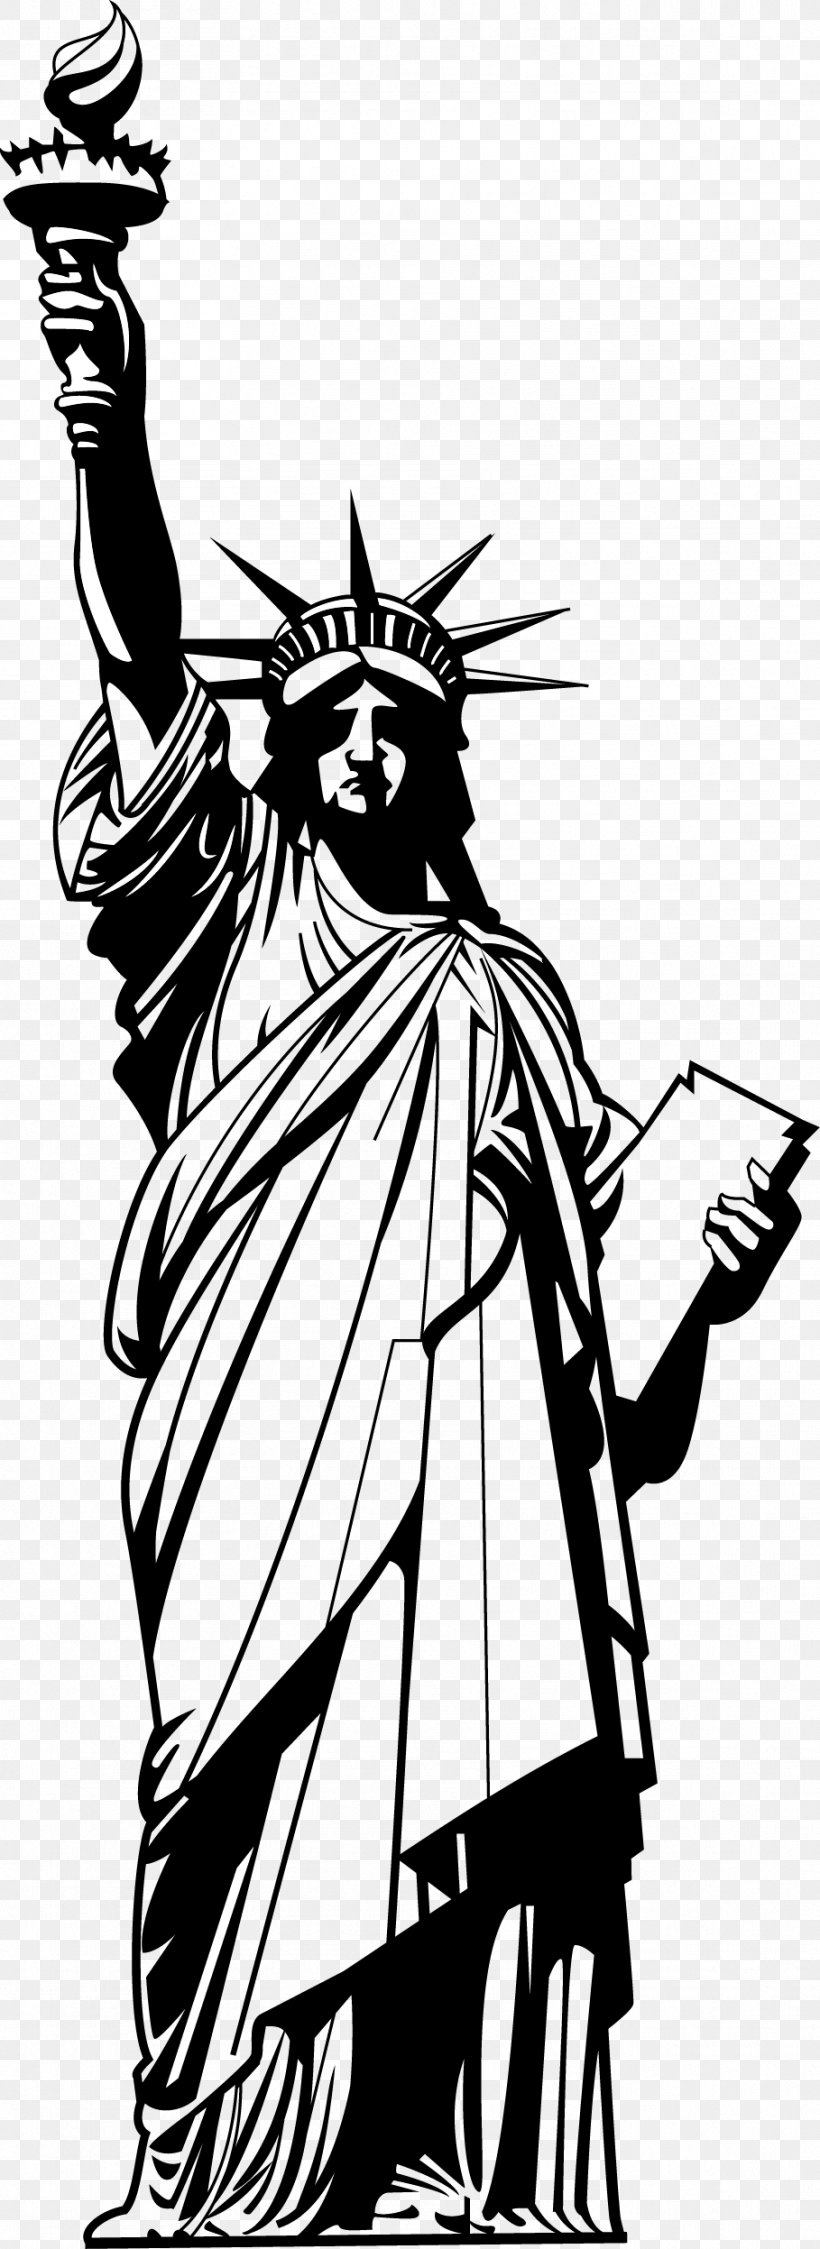 Statue Of Liberty National Monument Silhouette, PNG, 909x2494px, Statue Of Liberty, Art, Black And White, Cartoon, Drawing Download Free